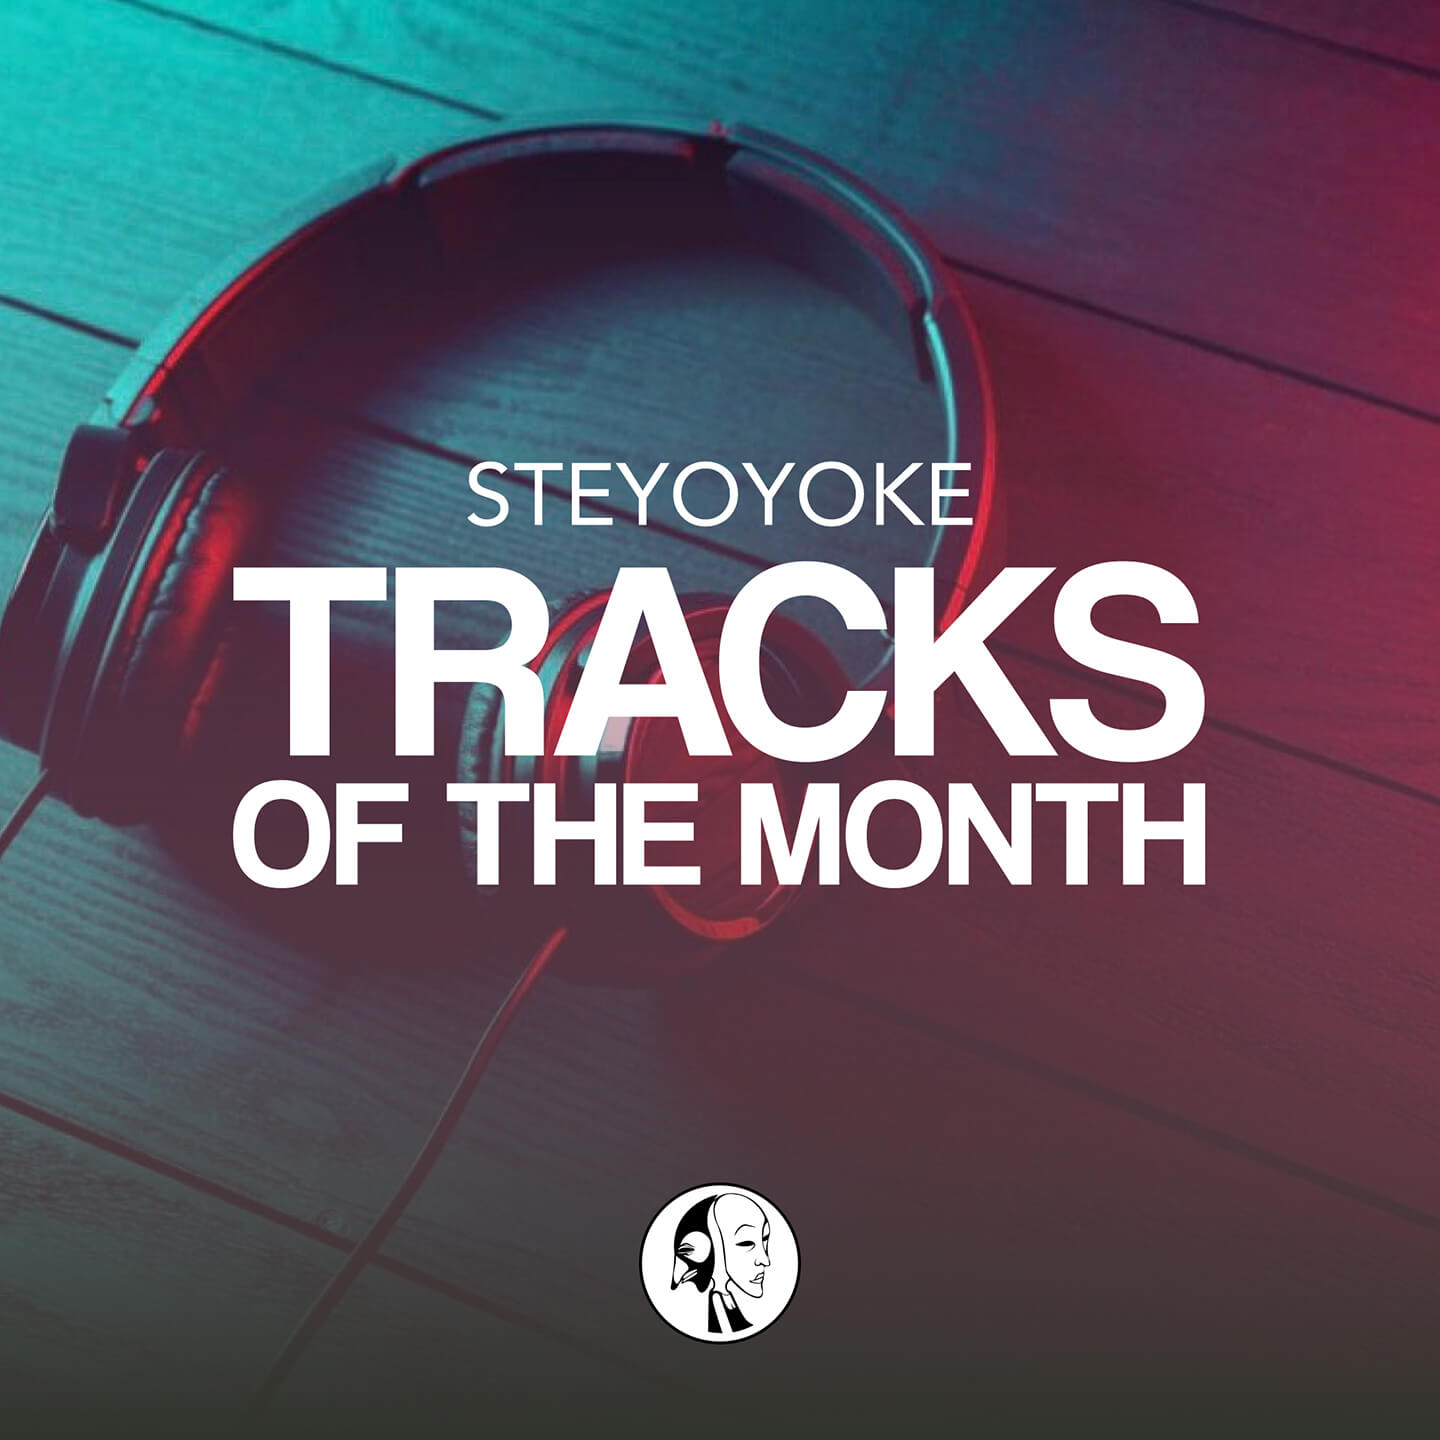 Steyoyoke-TRACKS-OF-THE-MONTH-Spotify